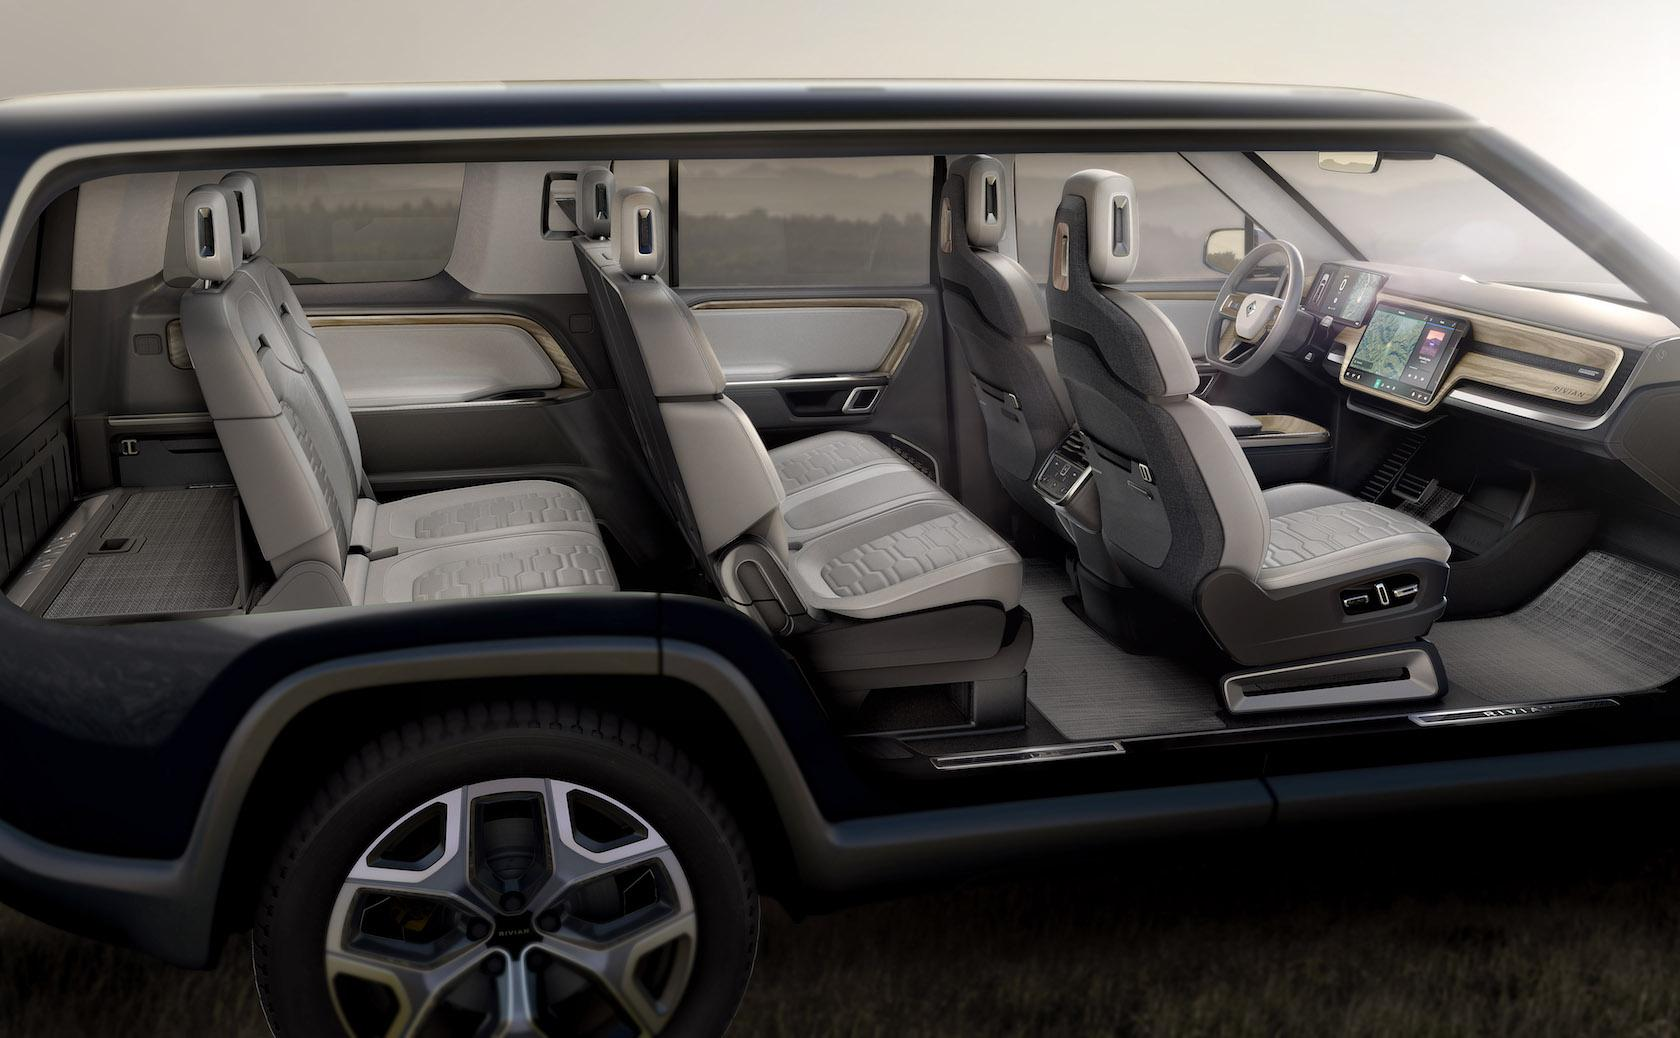 7 Seater Vehicles >> Rivian R1s 7 Seat Electric Suv Pairs Self Driving And 410 Mile Range